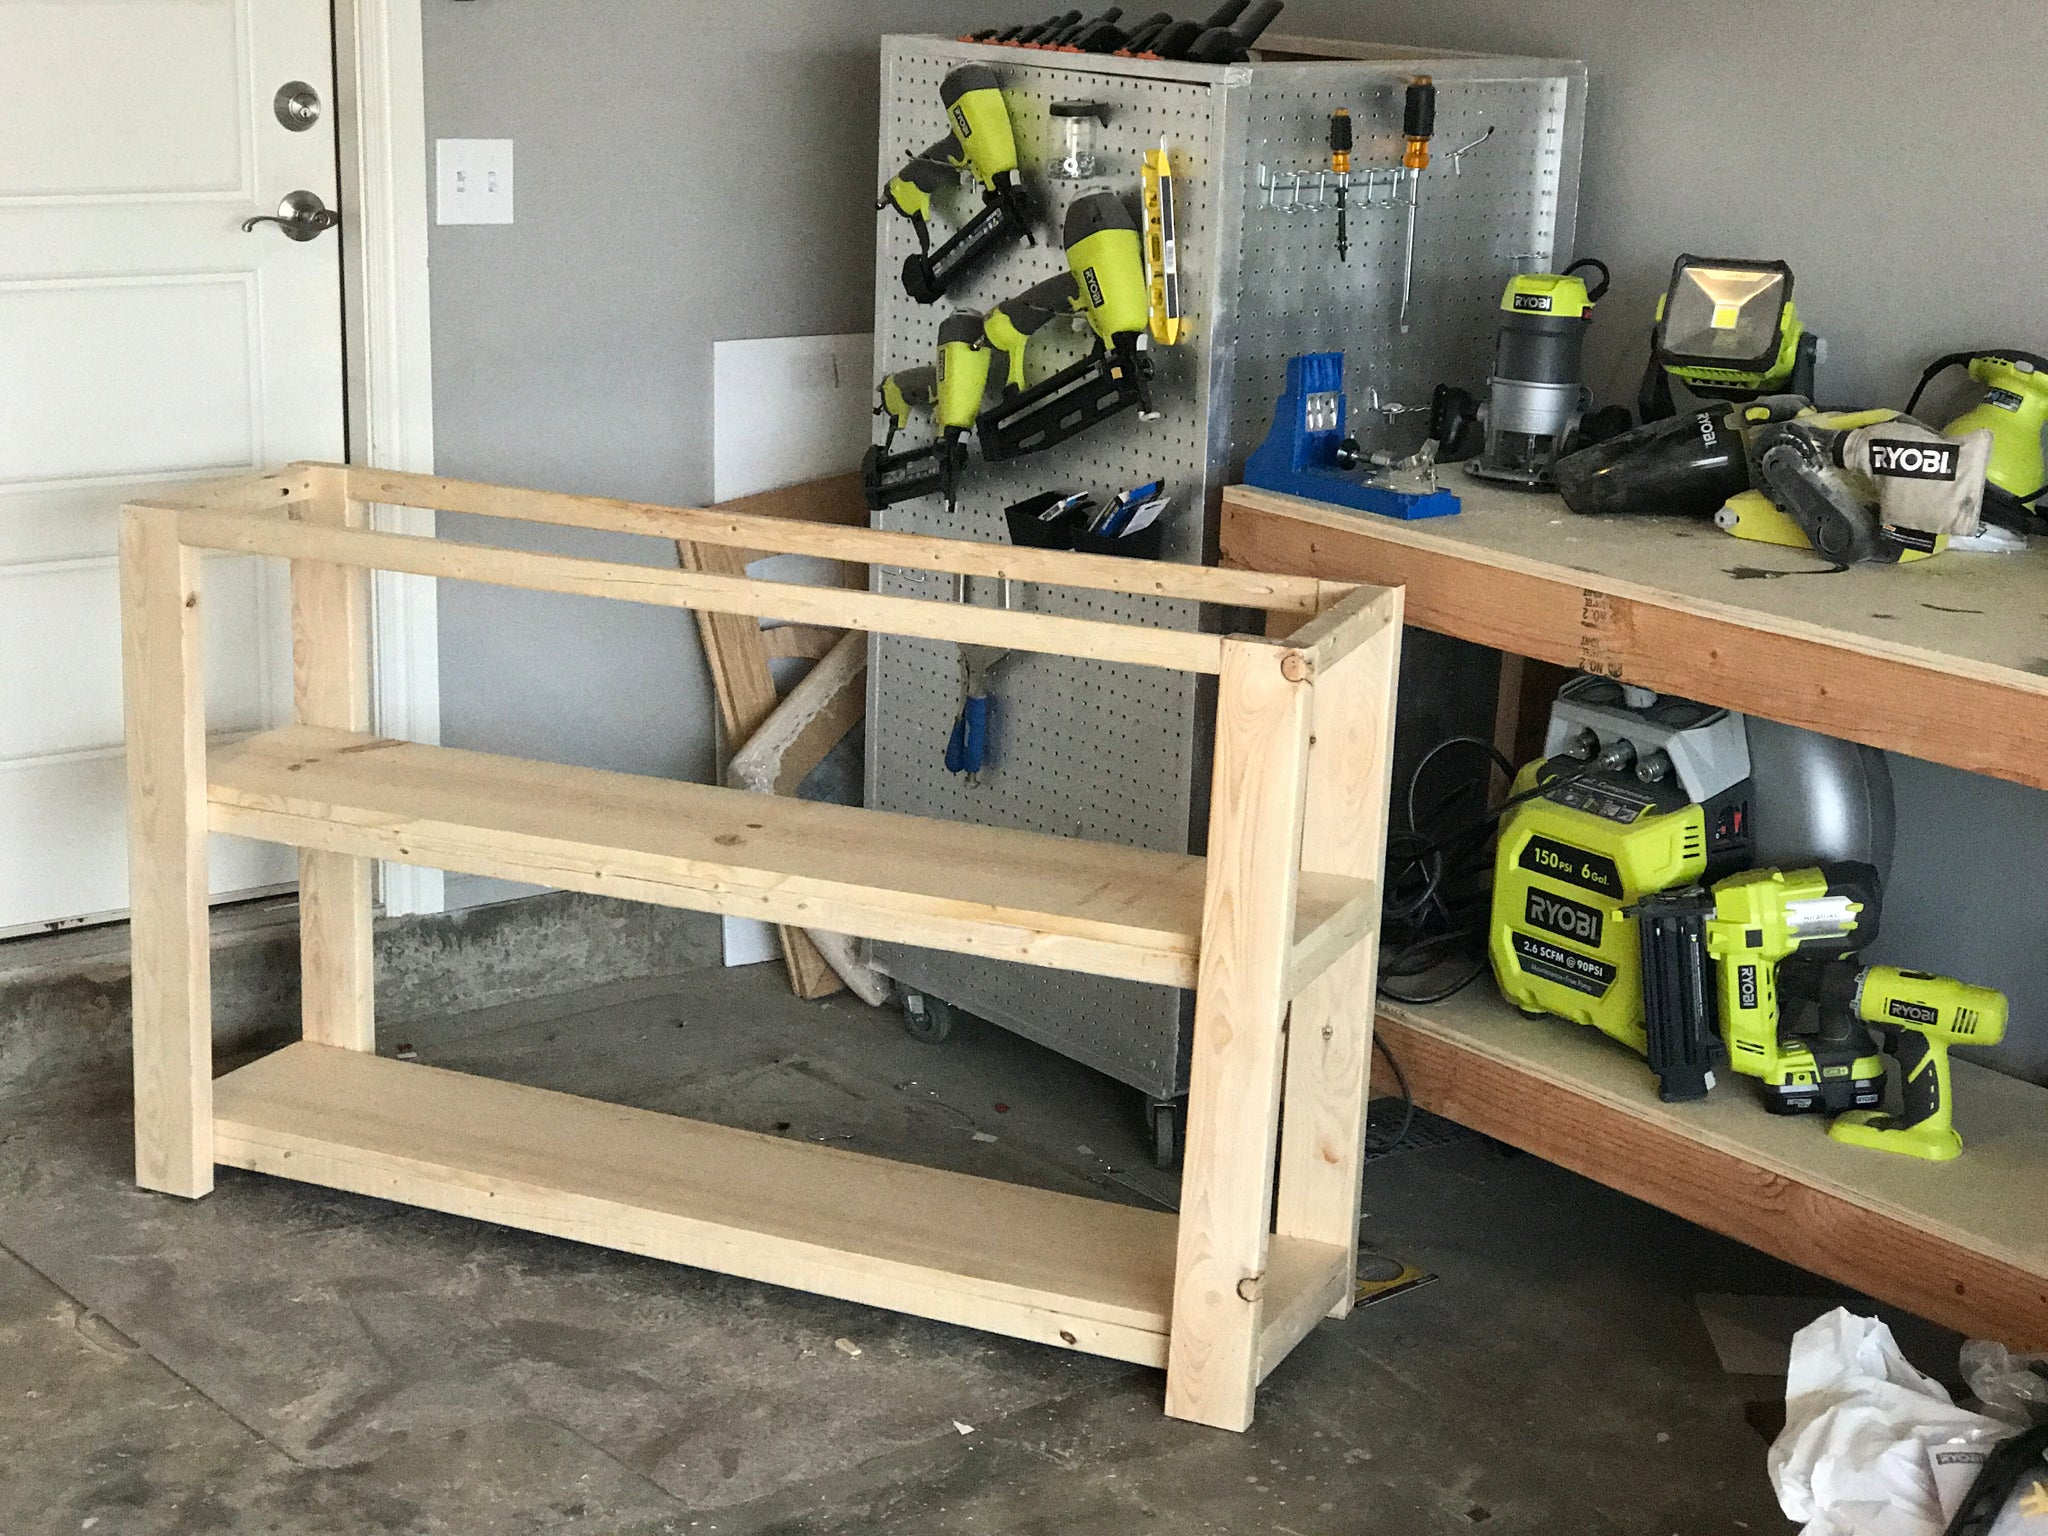 X Console table in a large with tools